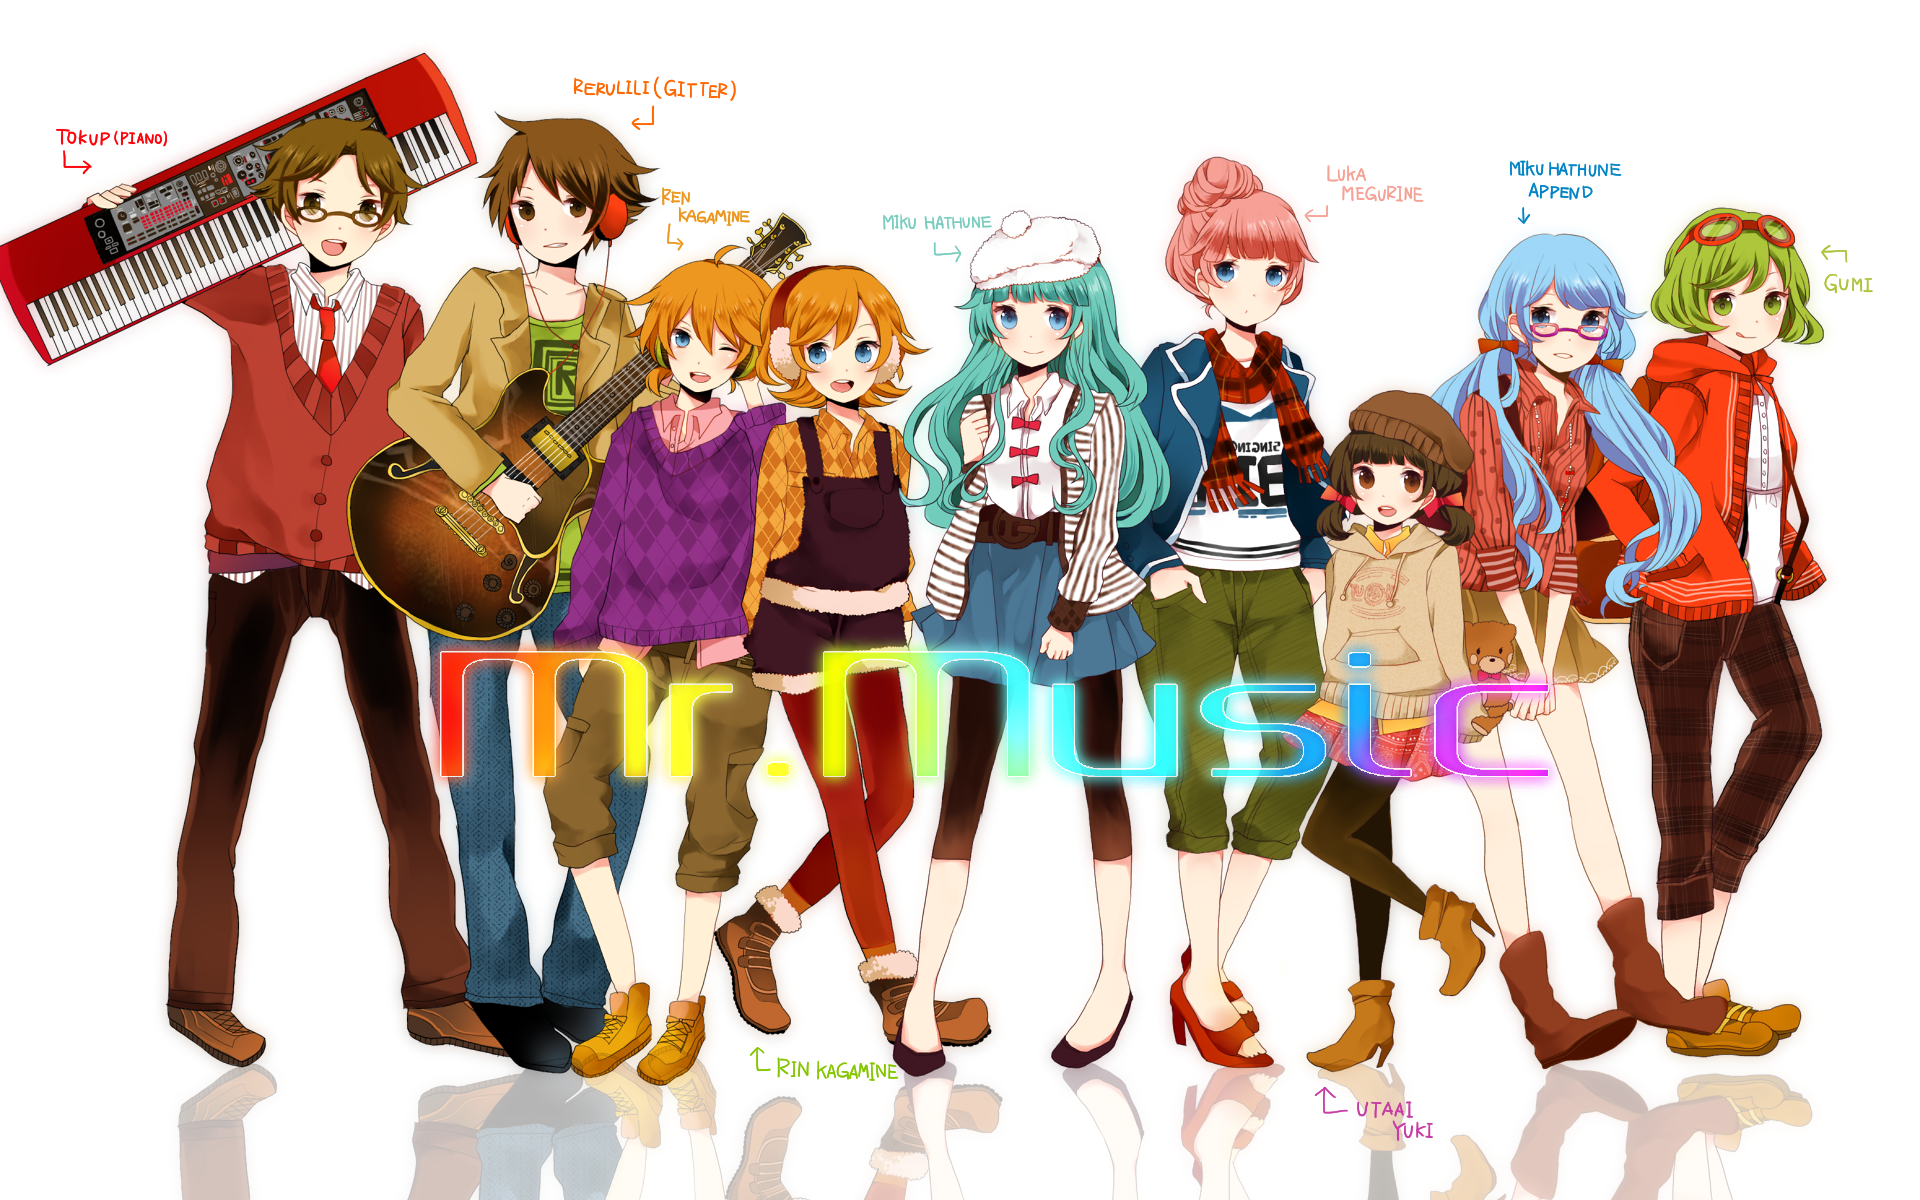 Mr Music | Vocaloid Wiki | FANDOM powered by Wikia